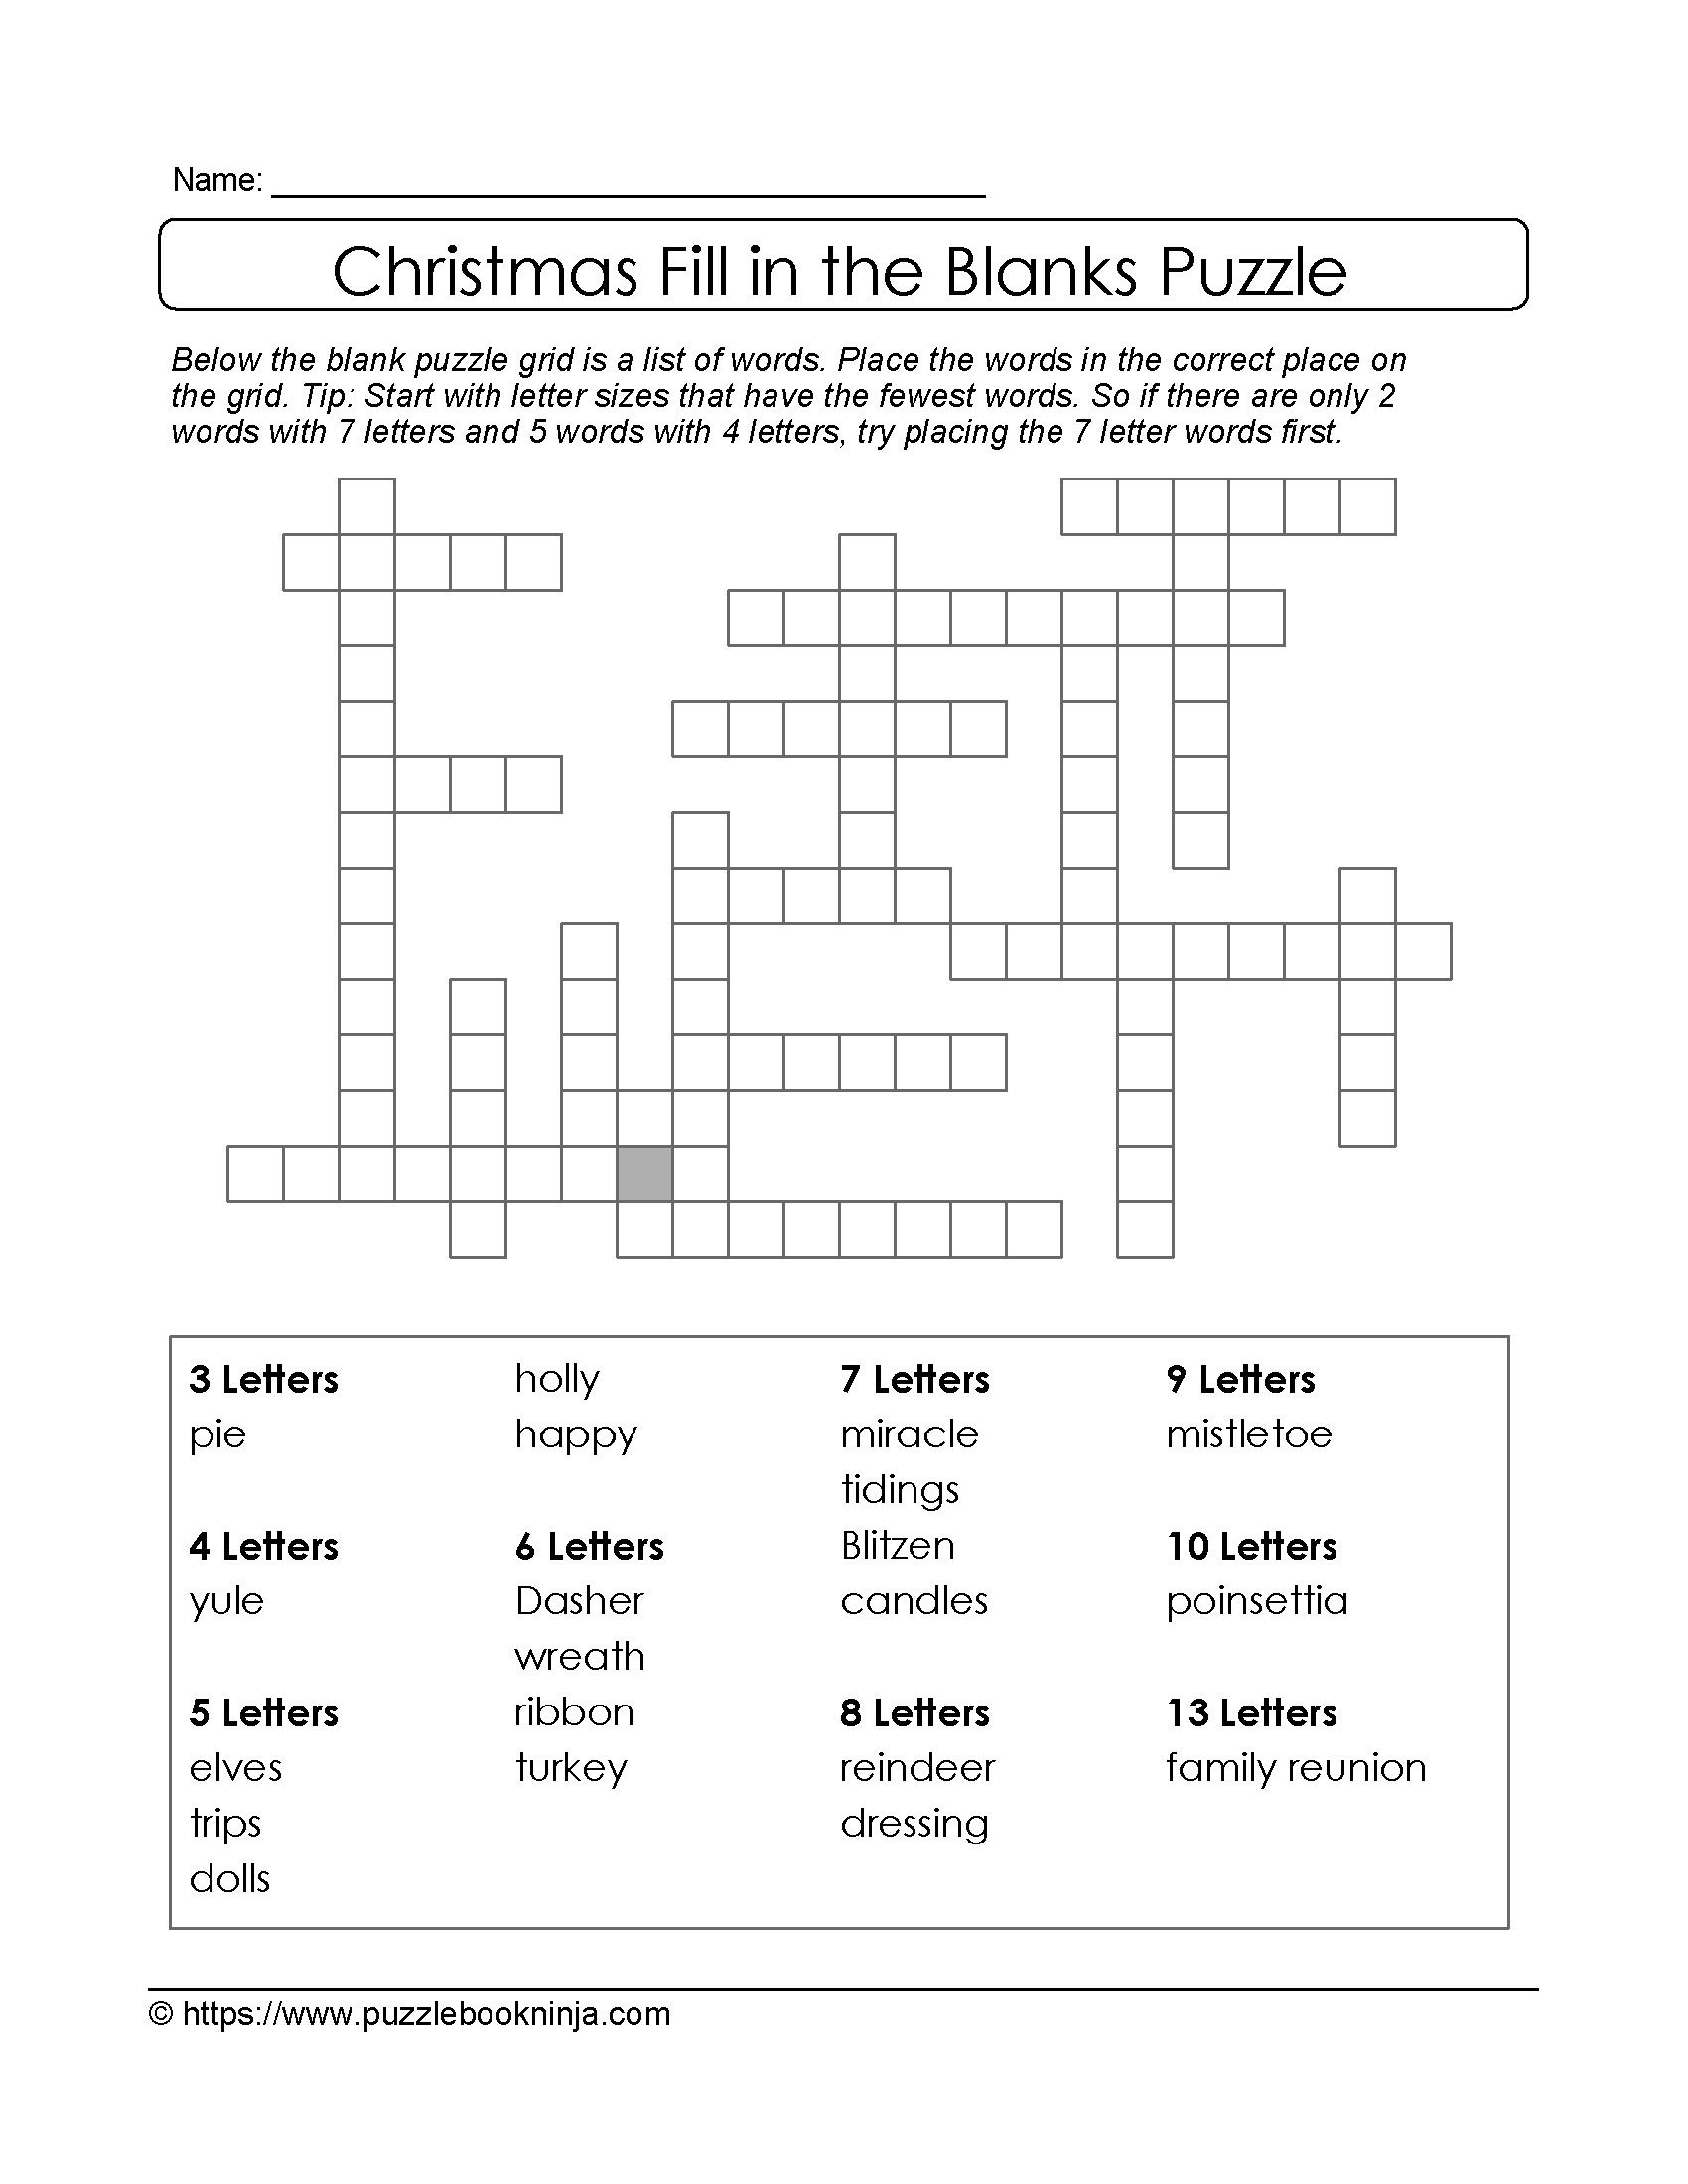 Puzzles To Print. Downloadable Christmas Puzzle. | Christmas Puzzles - Printable Science Puzzles